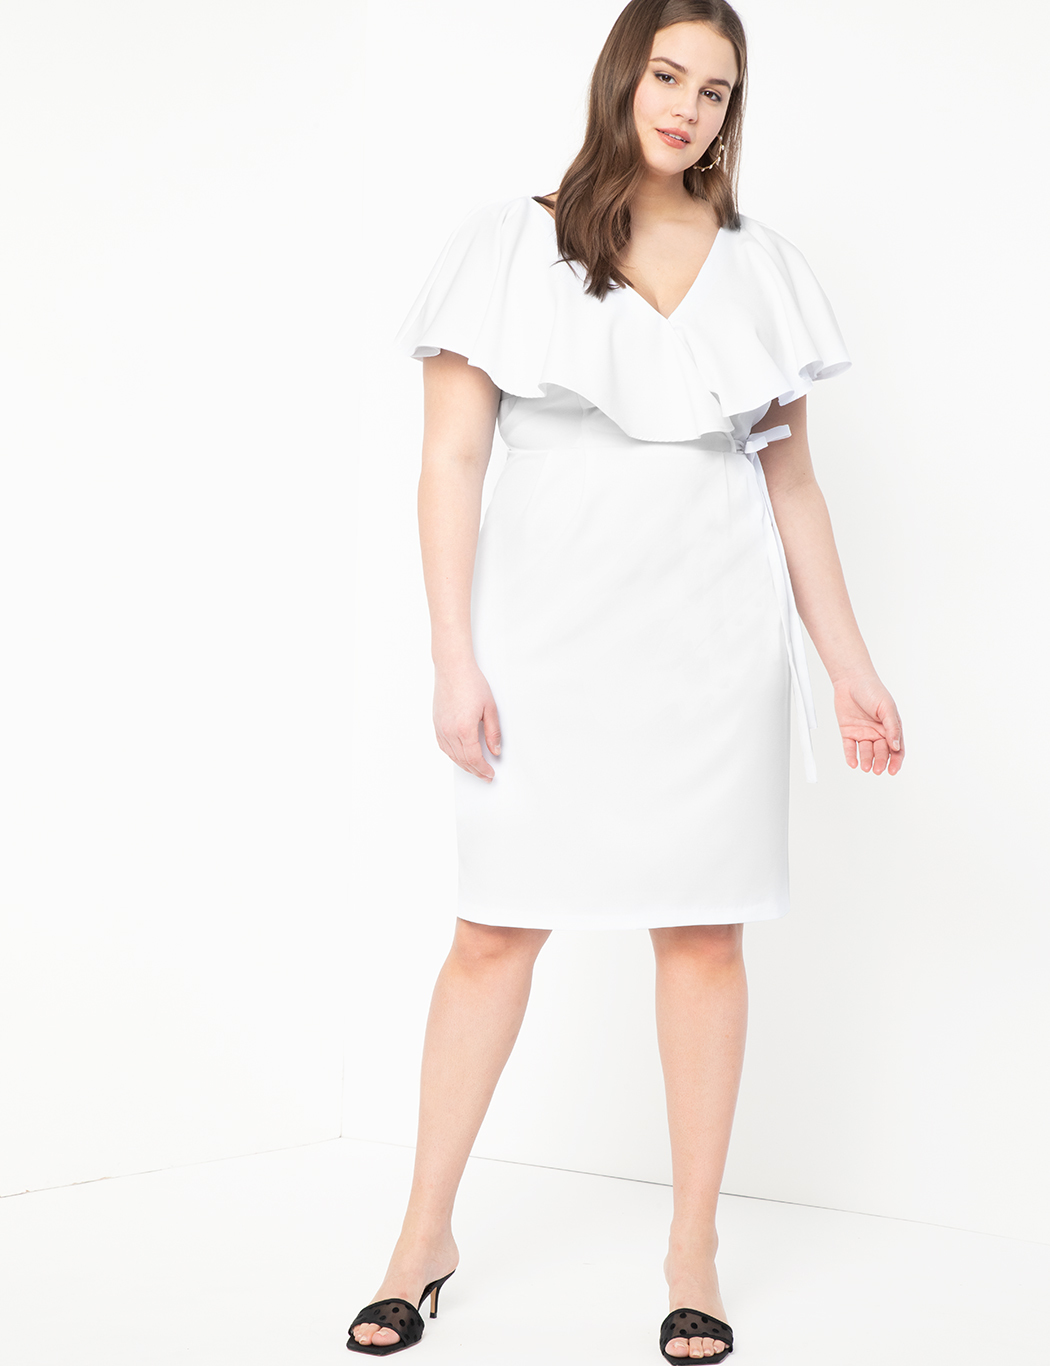 Surplice Bodice Dress with Cape Sleeve